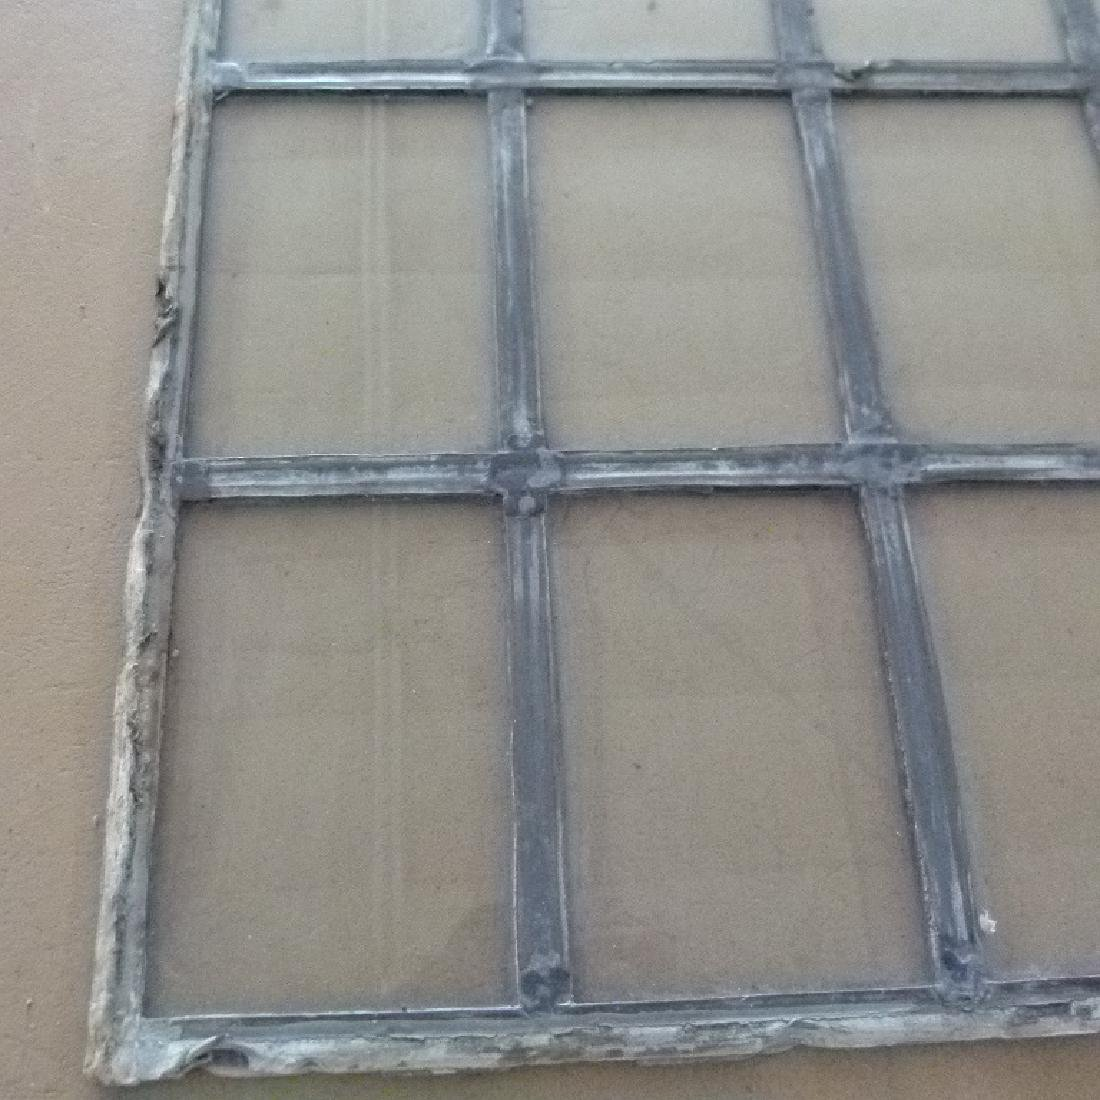 LOT ASSORT. MISSION STYLE LEADED GLASS WINDOWS - 5